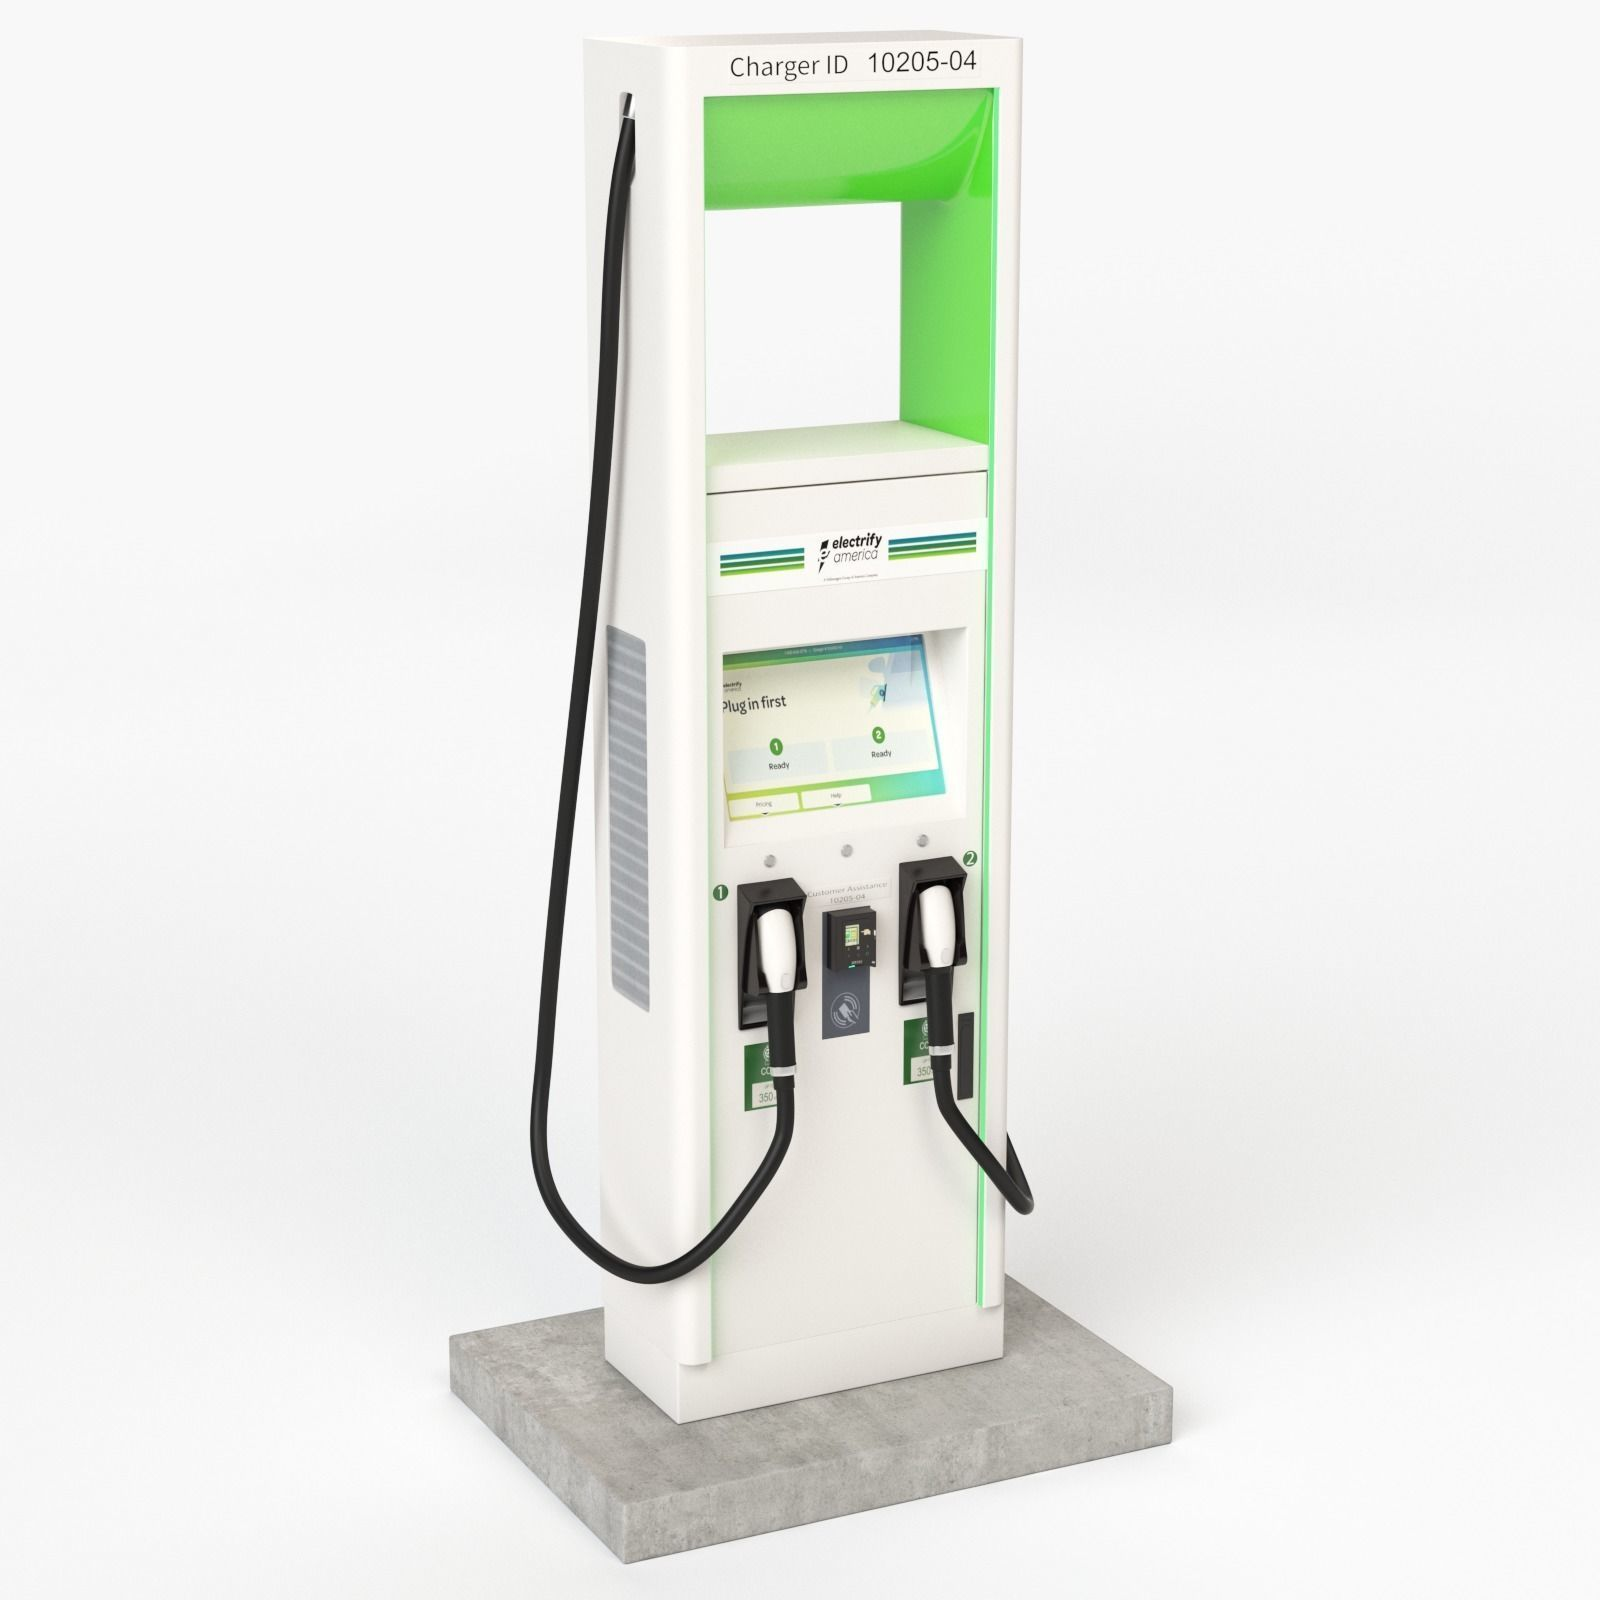 Electric Vehicle Charging Station Electrify America Part 2